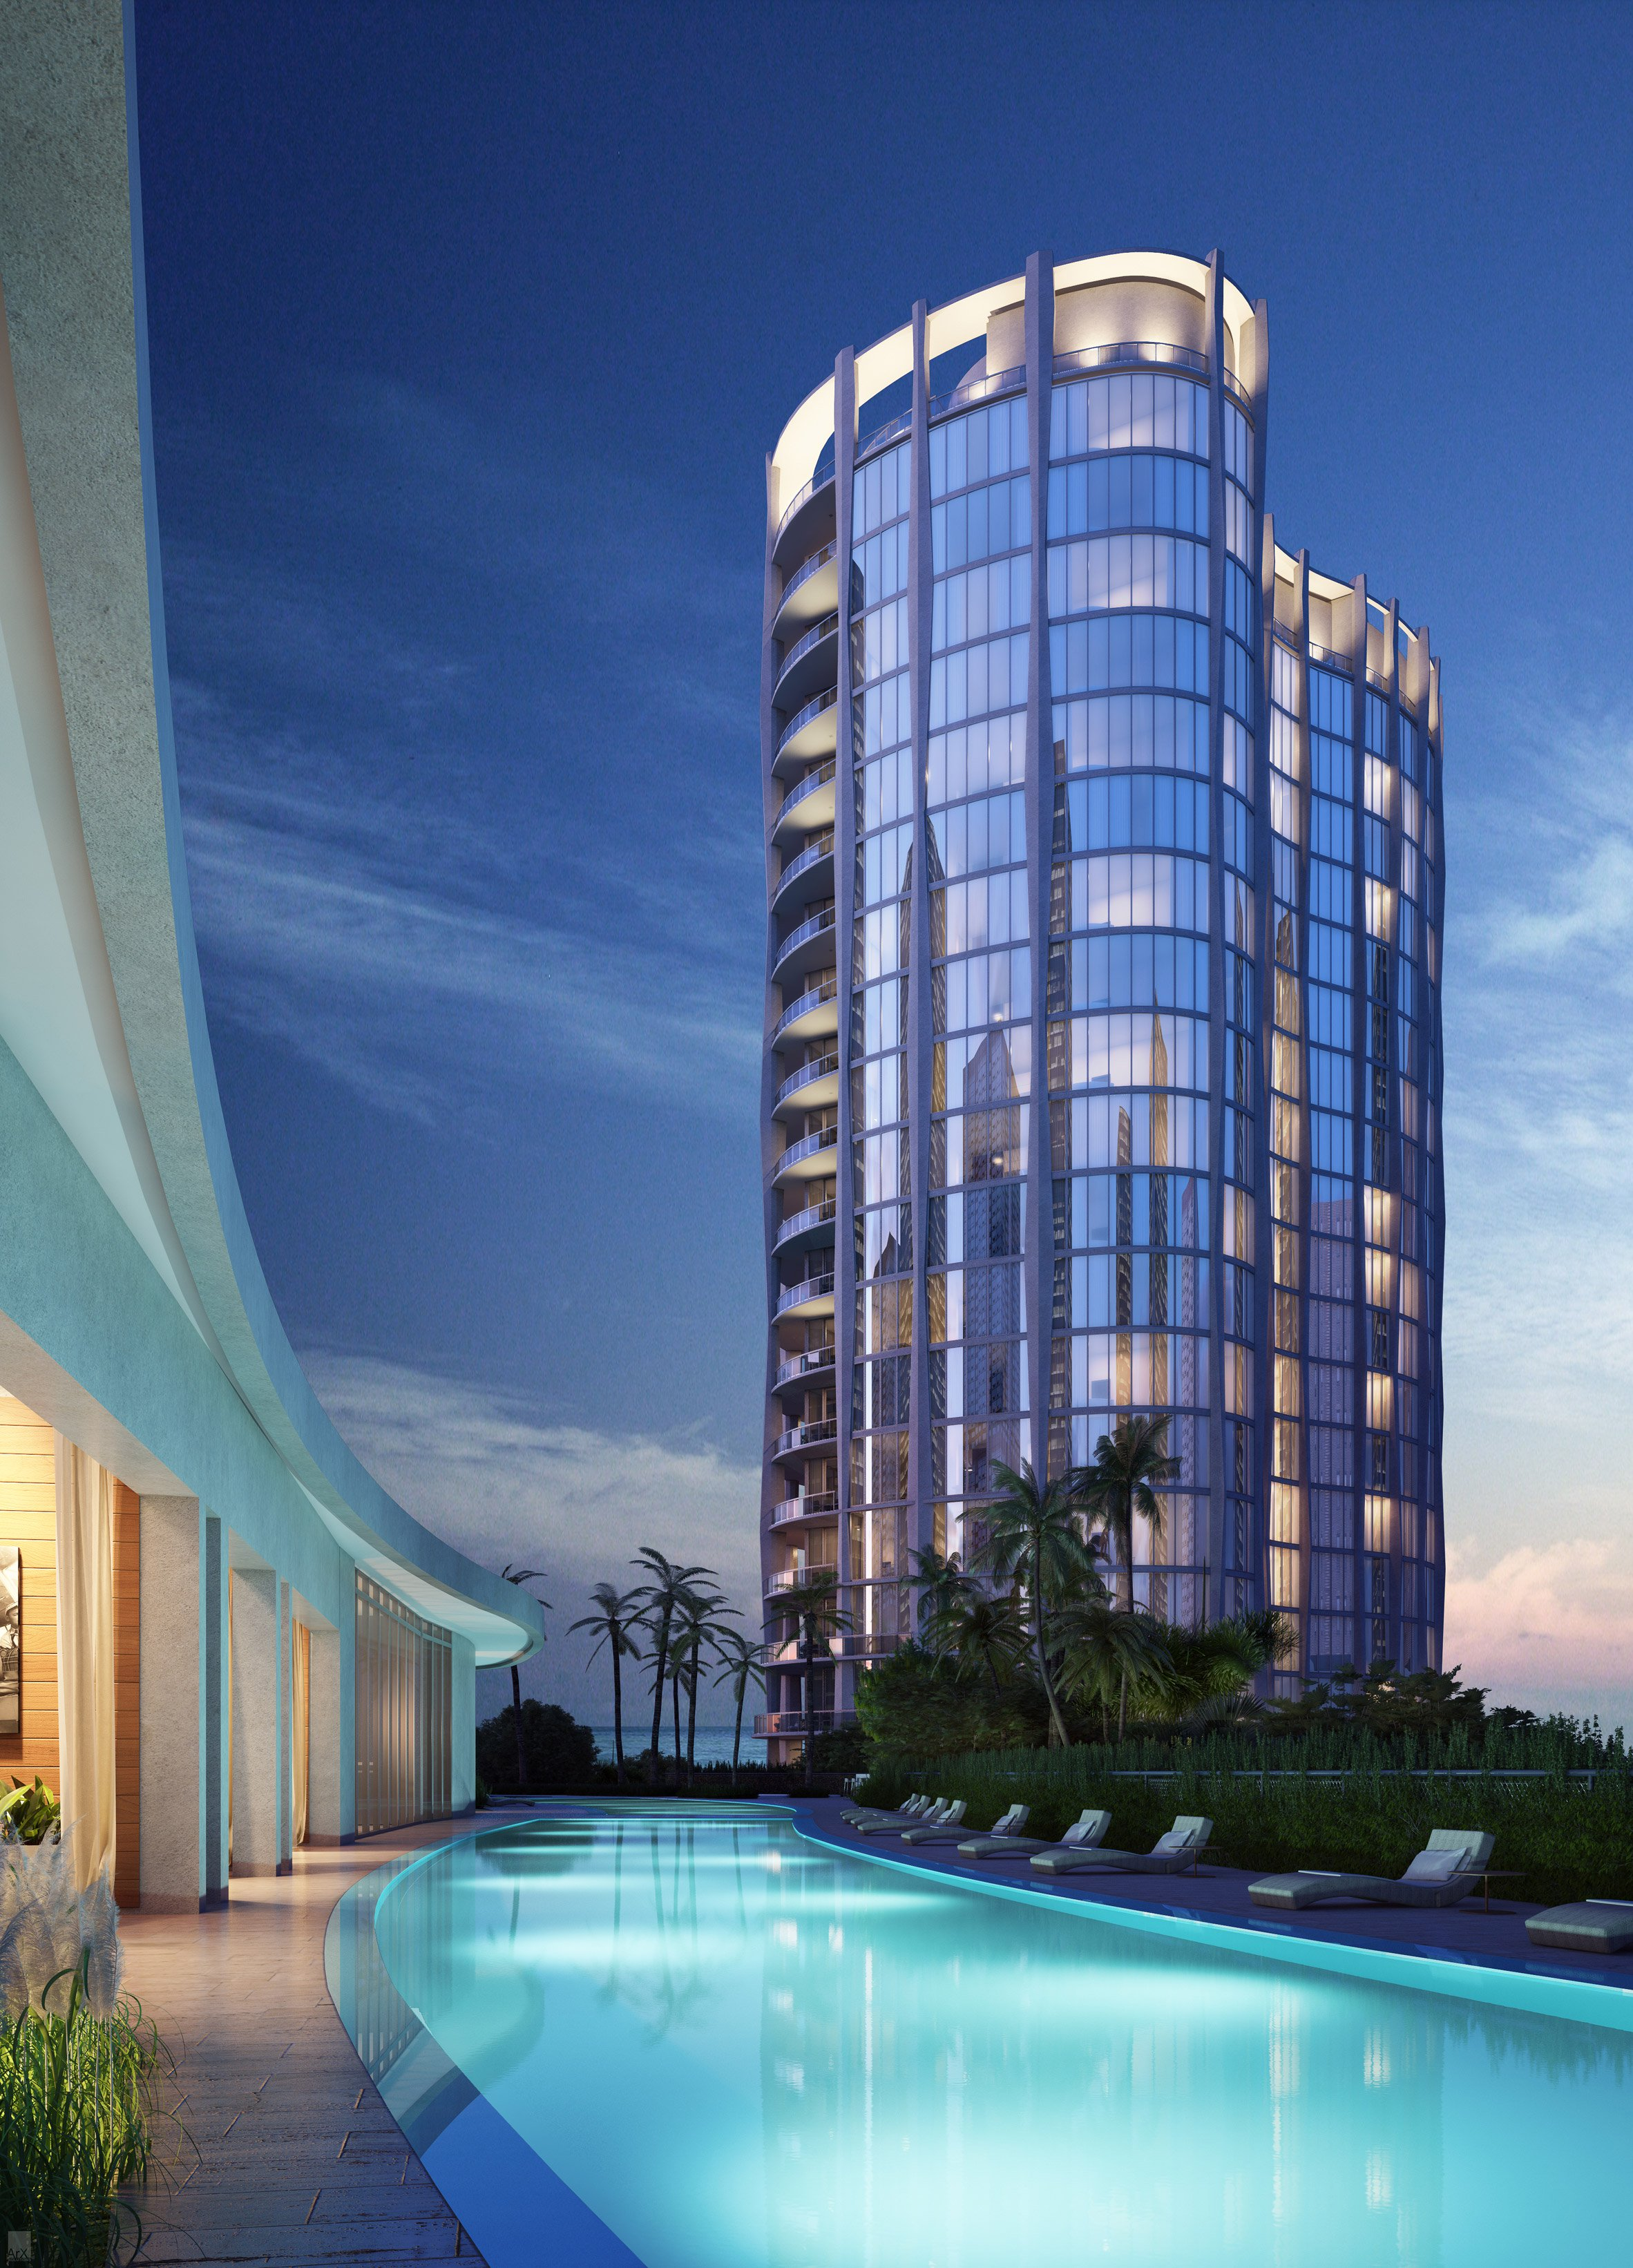 OMA's Park Grove towers in Miami shown in new renderings